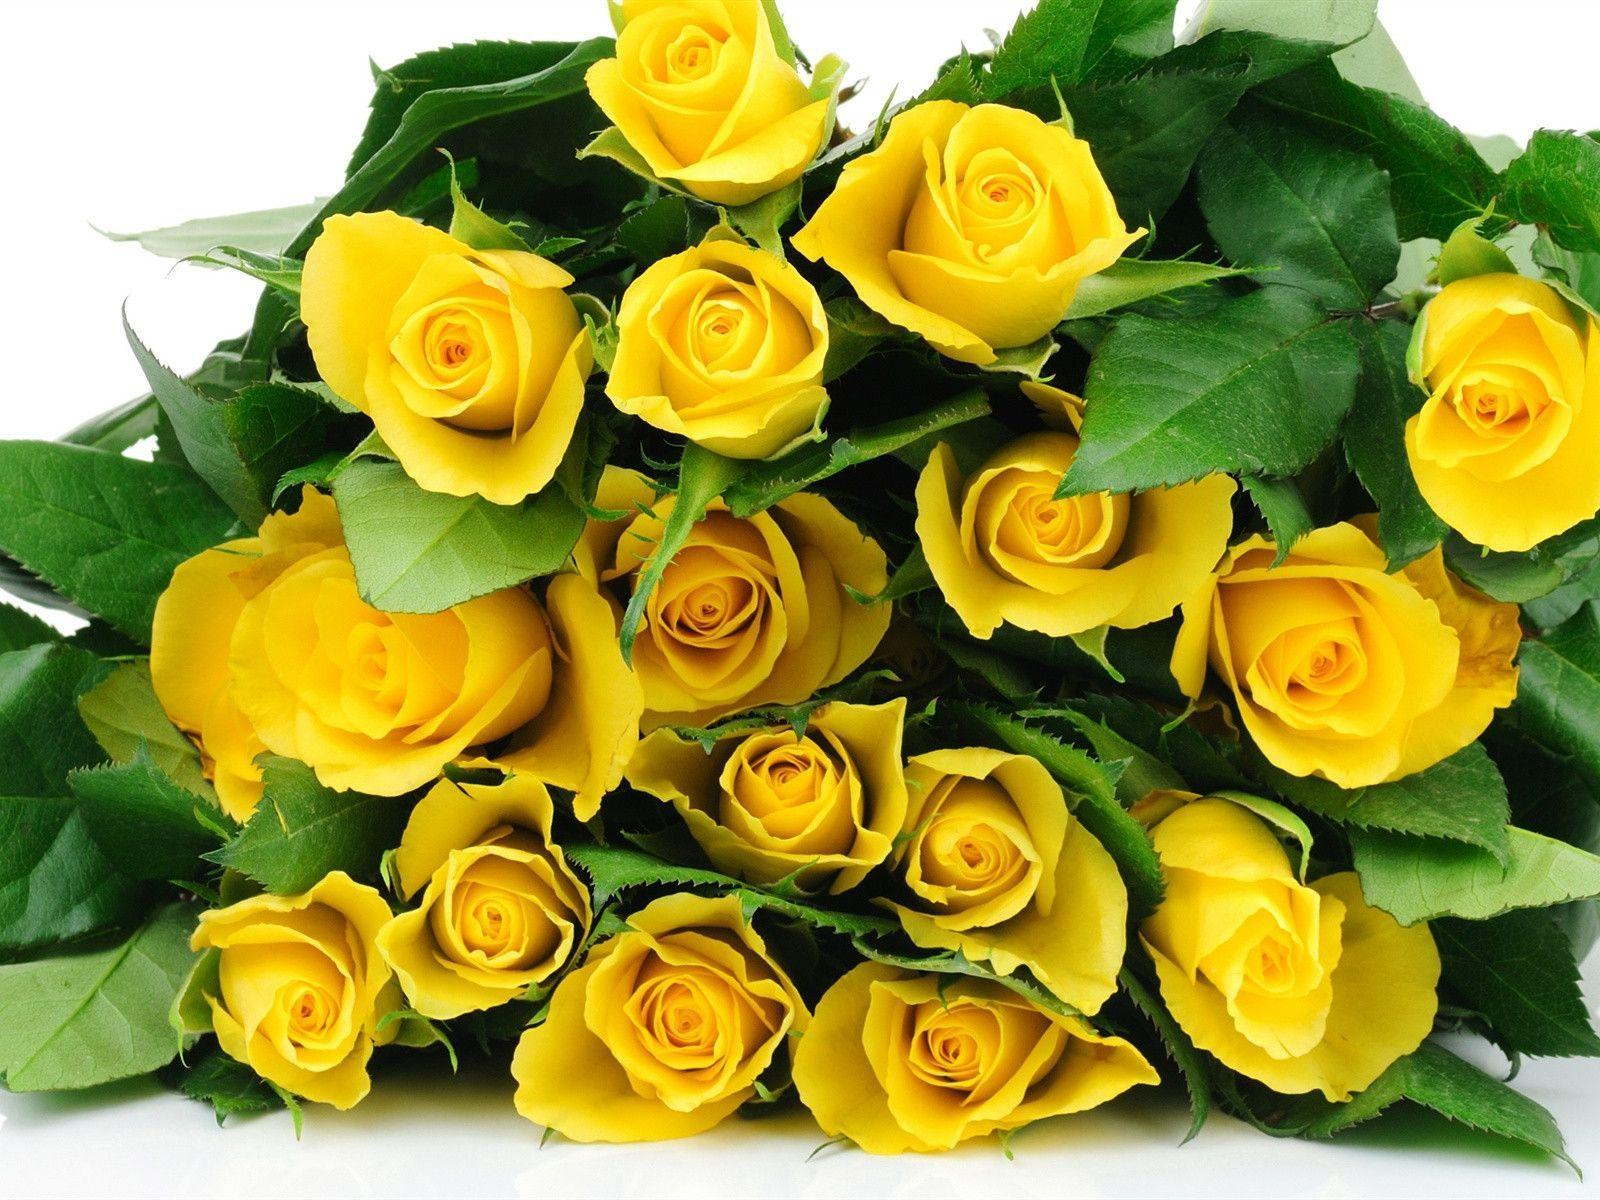 Yellow Rose Flower Wallpapers Wallpaper Cave